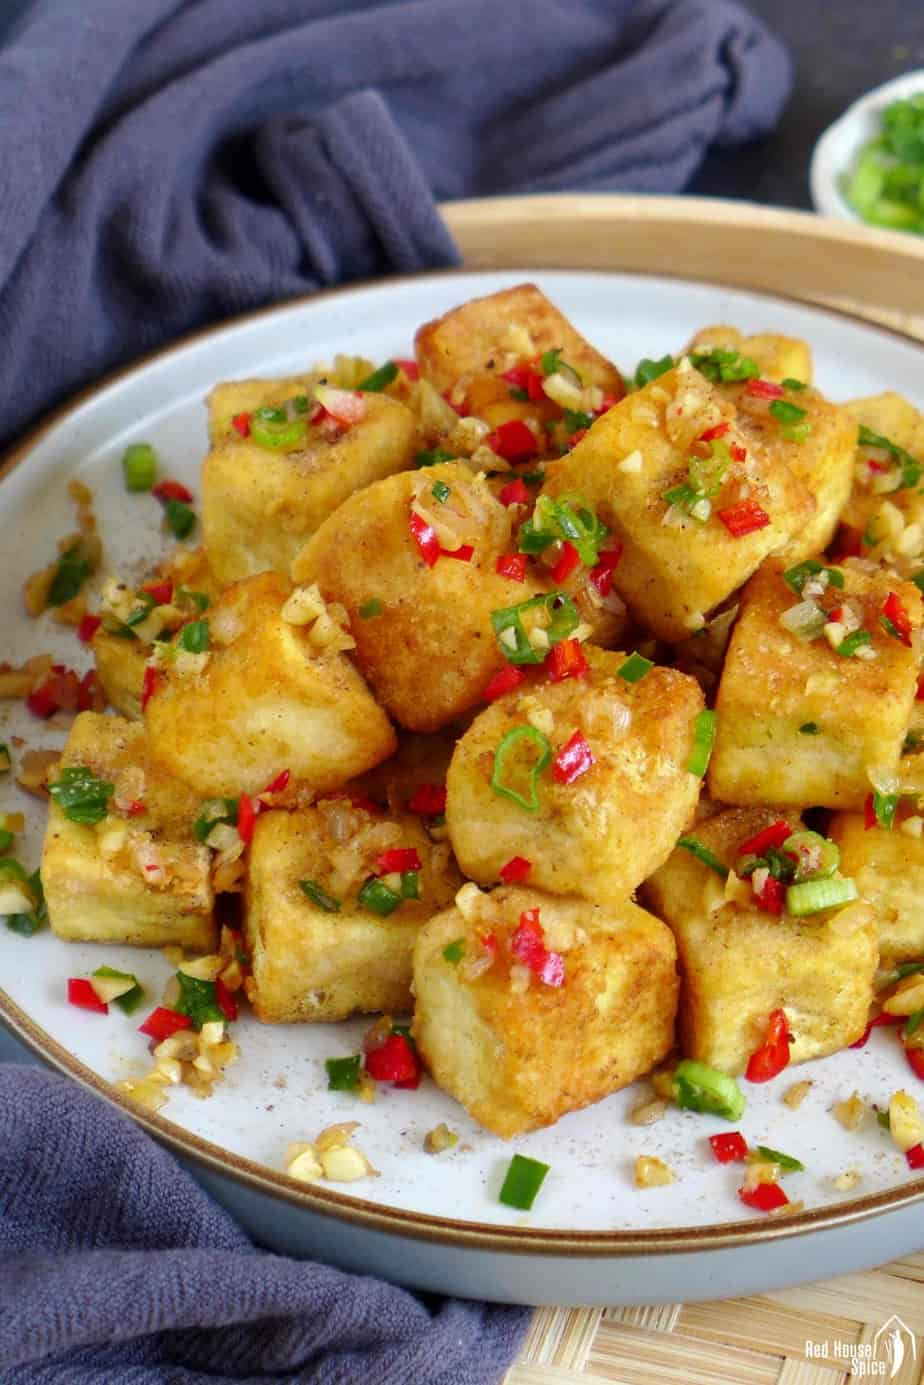 Salt and pepper tofu sprinkled with minced chili pepper, garlic and shallots